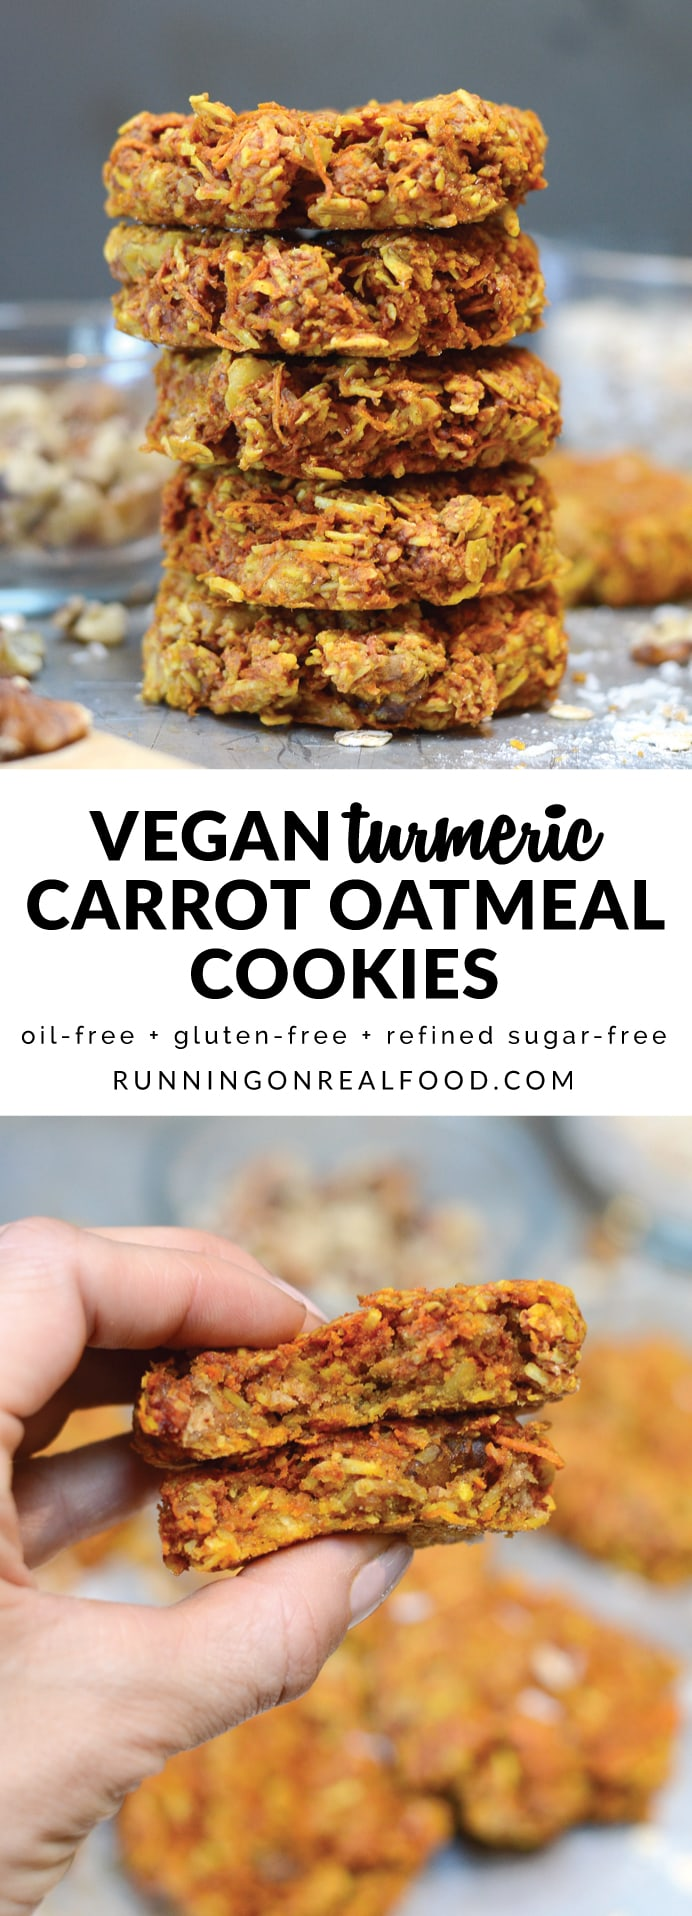 These vegan turmeric carrot oatmeal cookies have the most wonderful, hearty texture. They're oil-free, naturally sweetened, gluten-free and taste amazing! Loaded with nutrition from walnuts, natural peanut butter, coconut, turmeric, carrots and rolled oats.